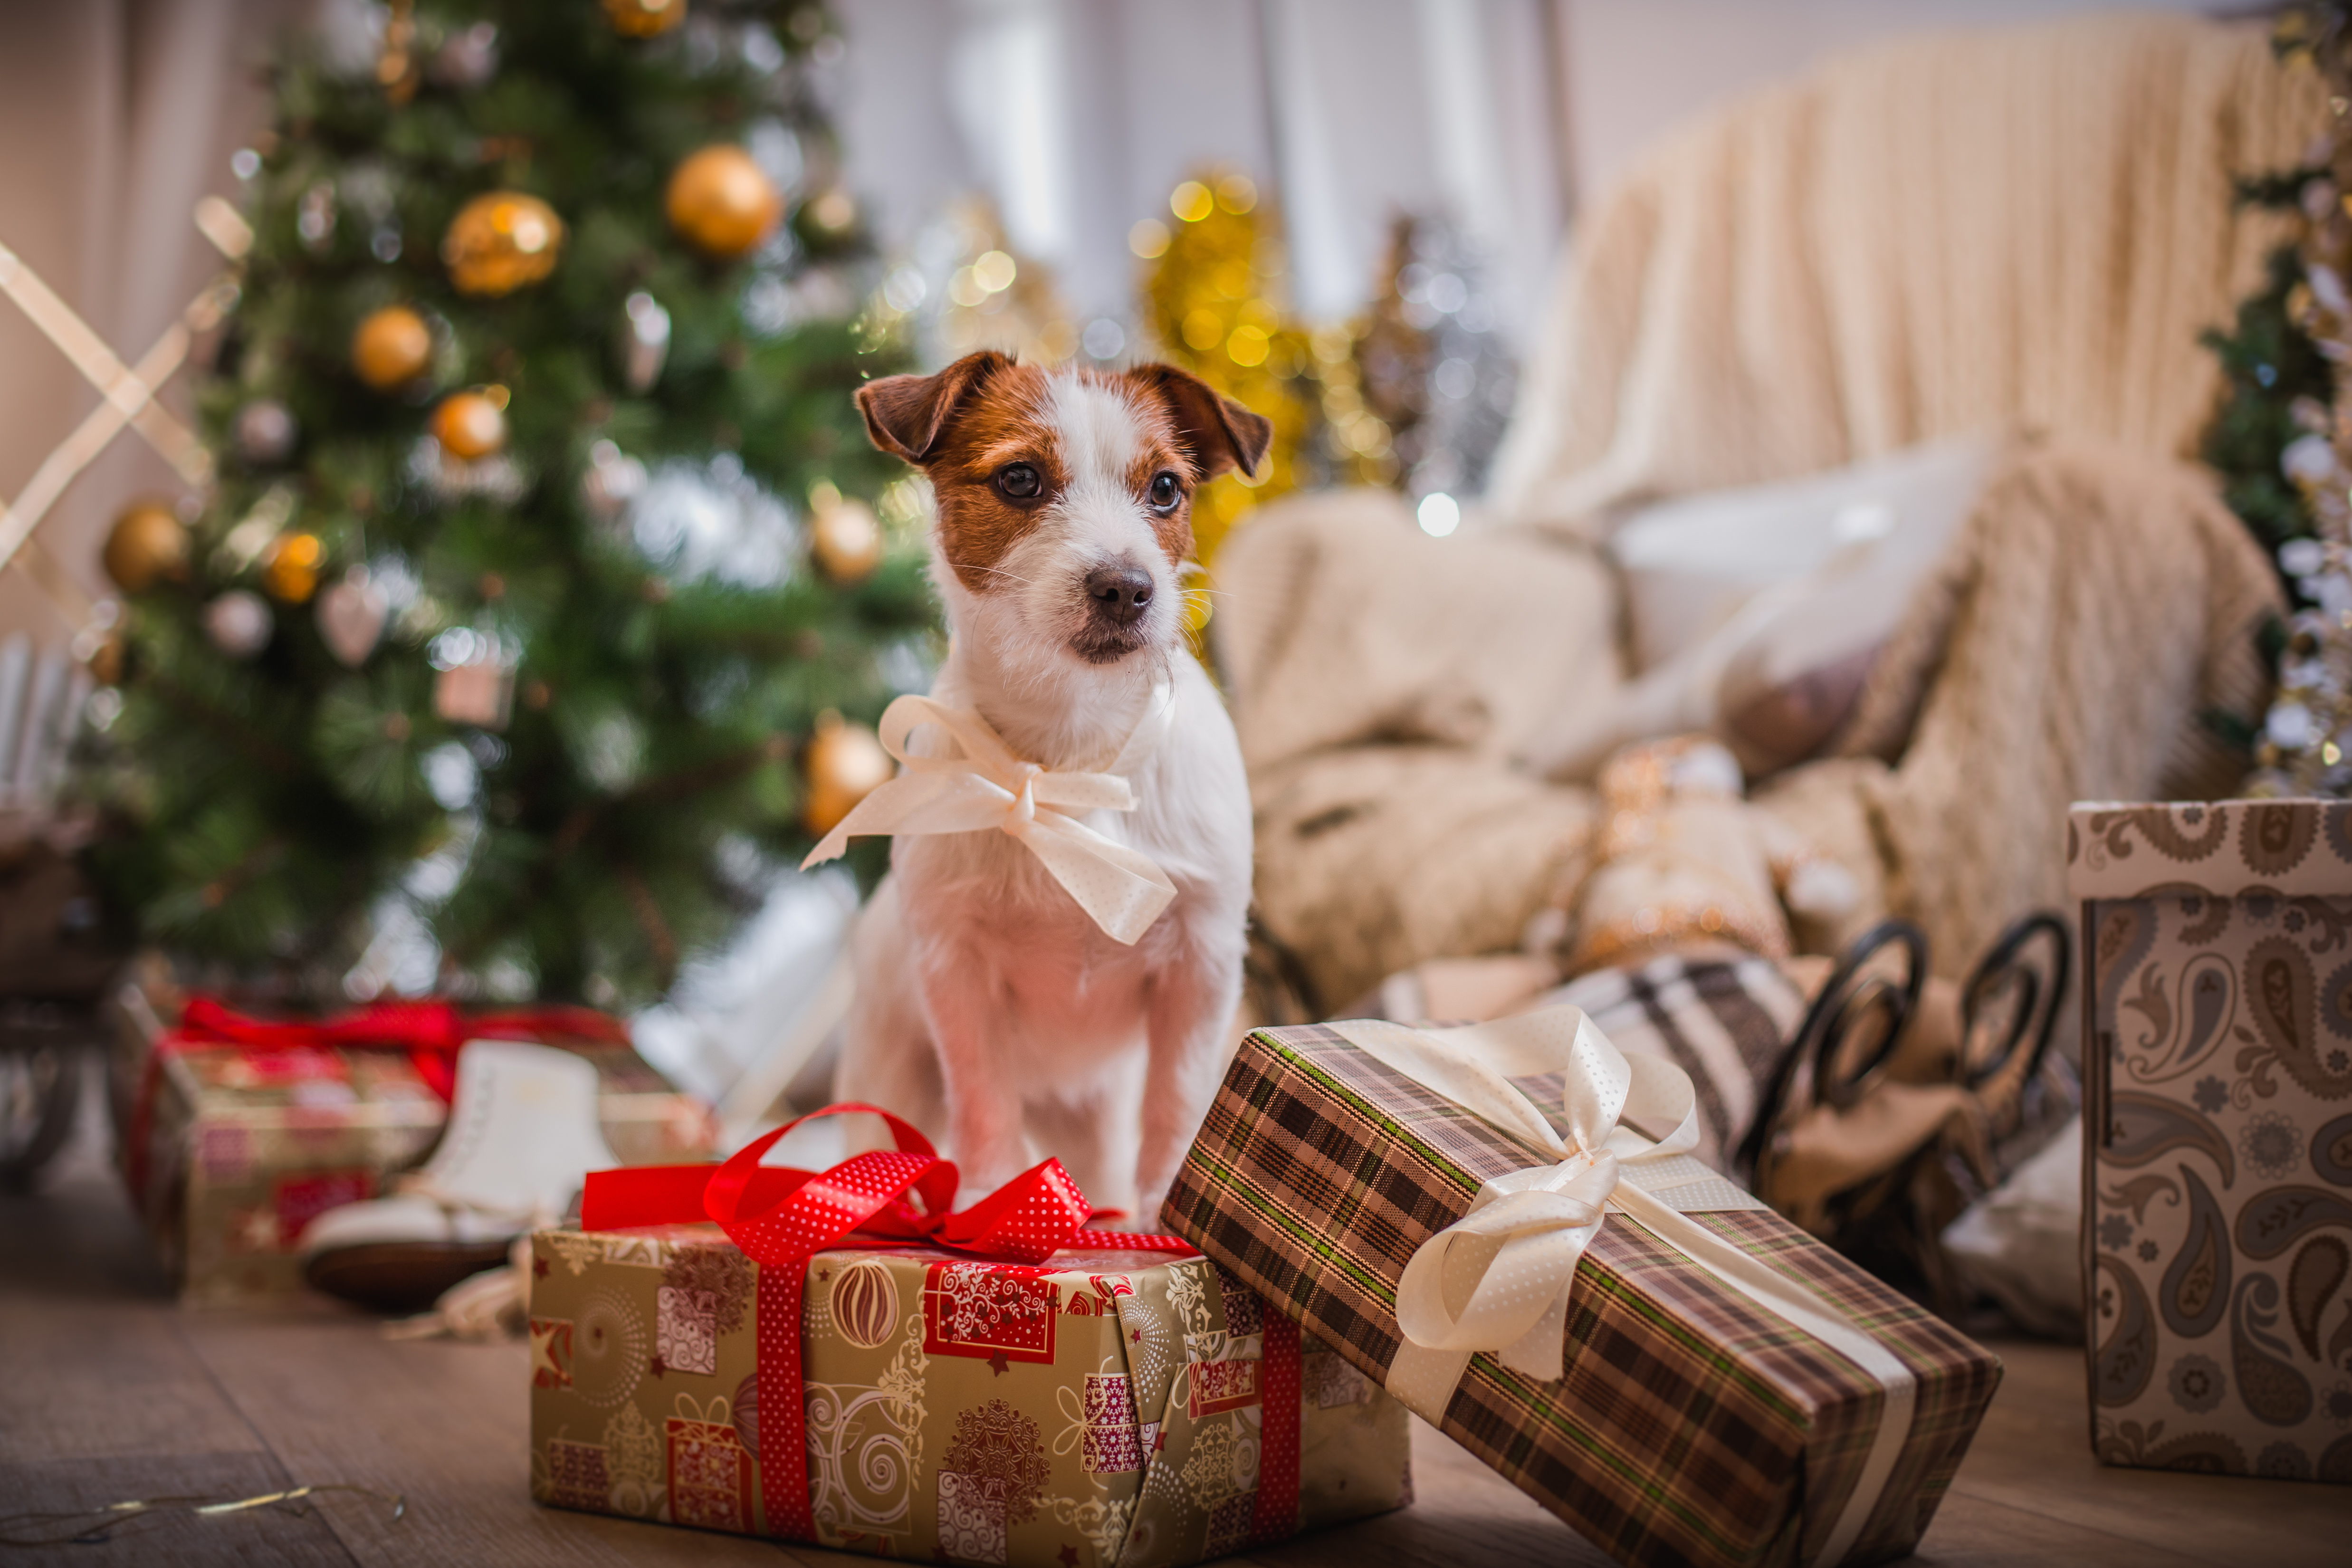 puppies and kittens are a great holiday gift